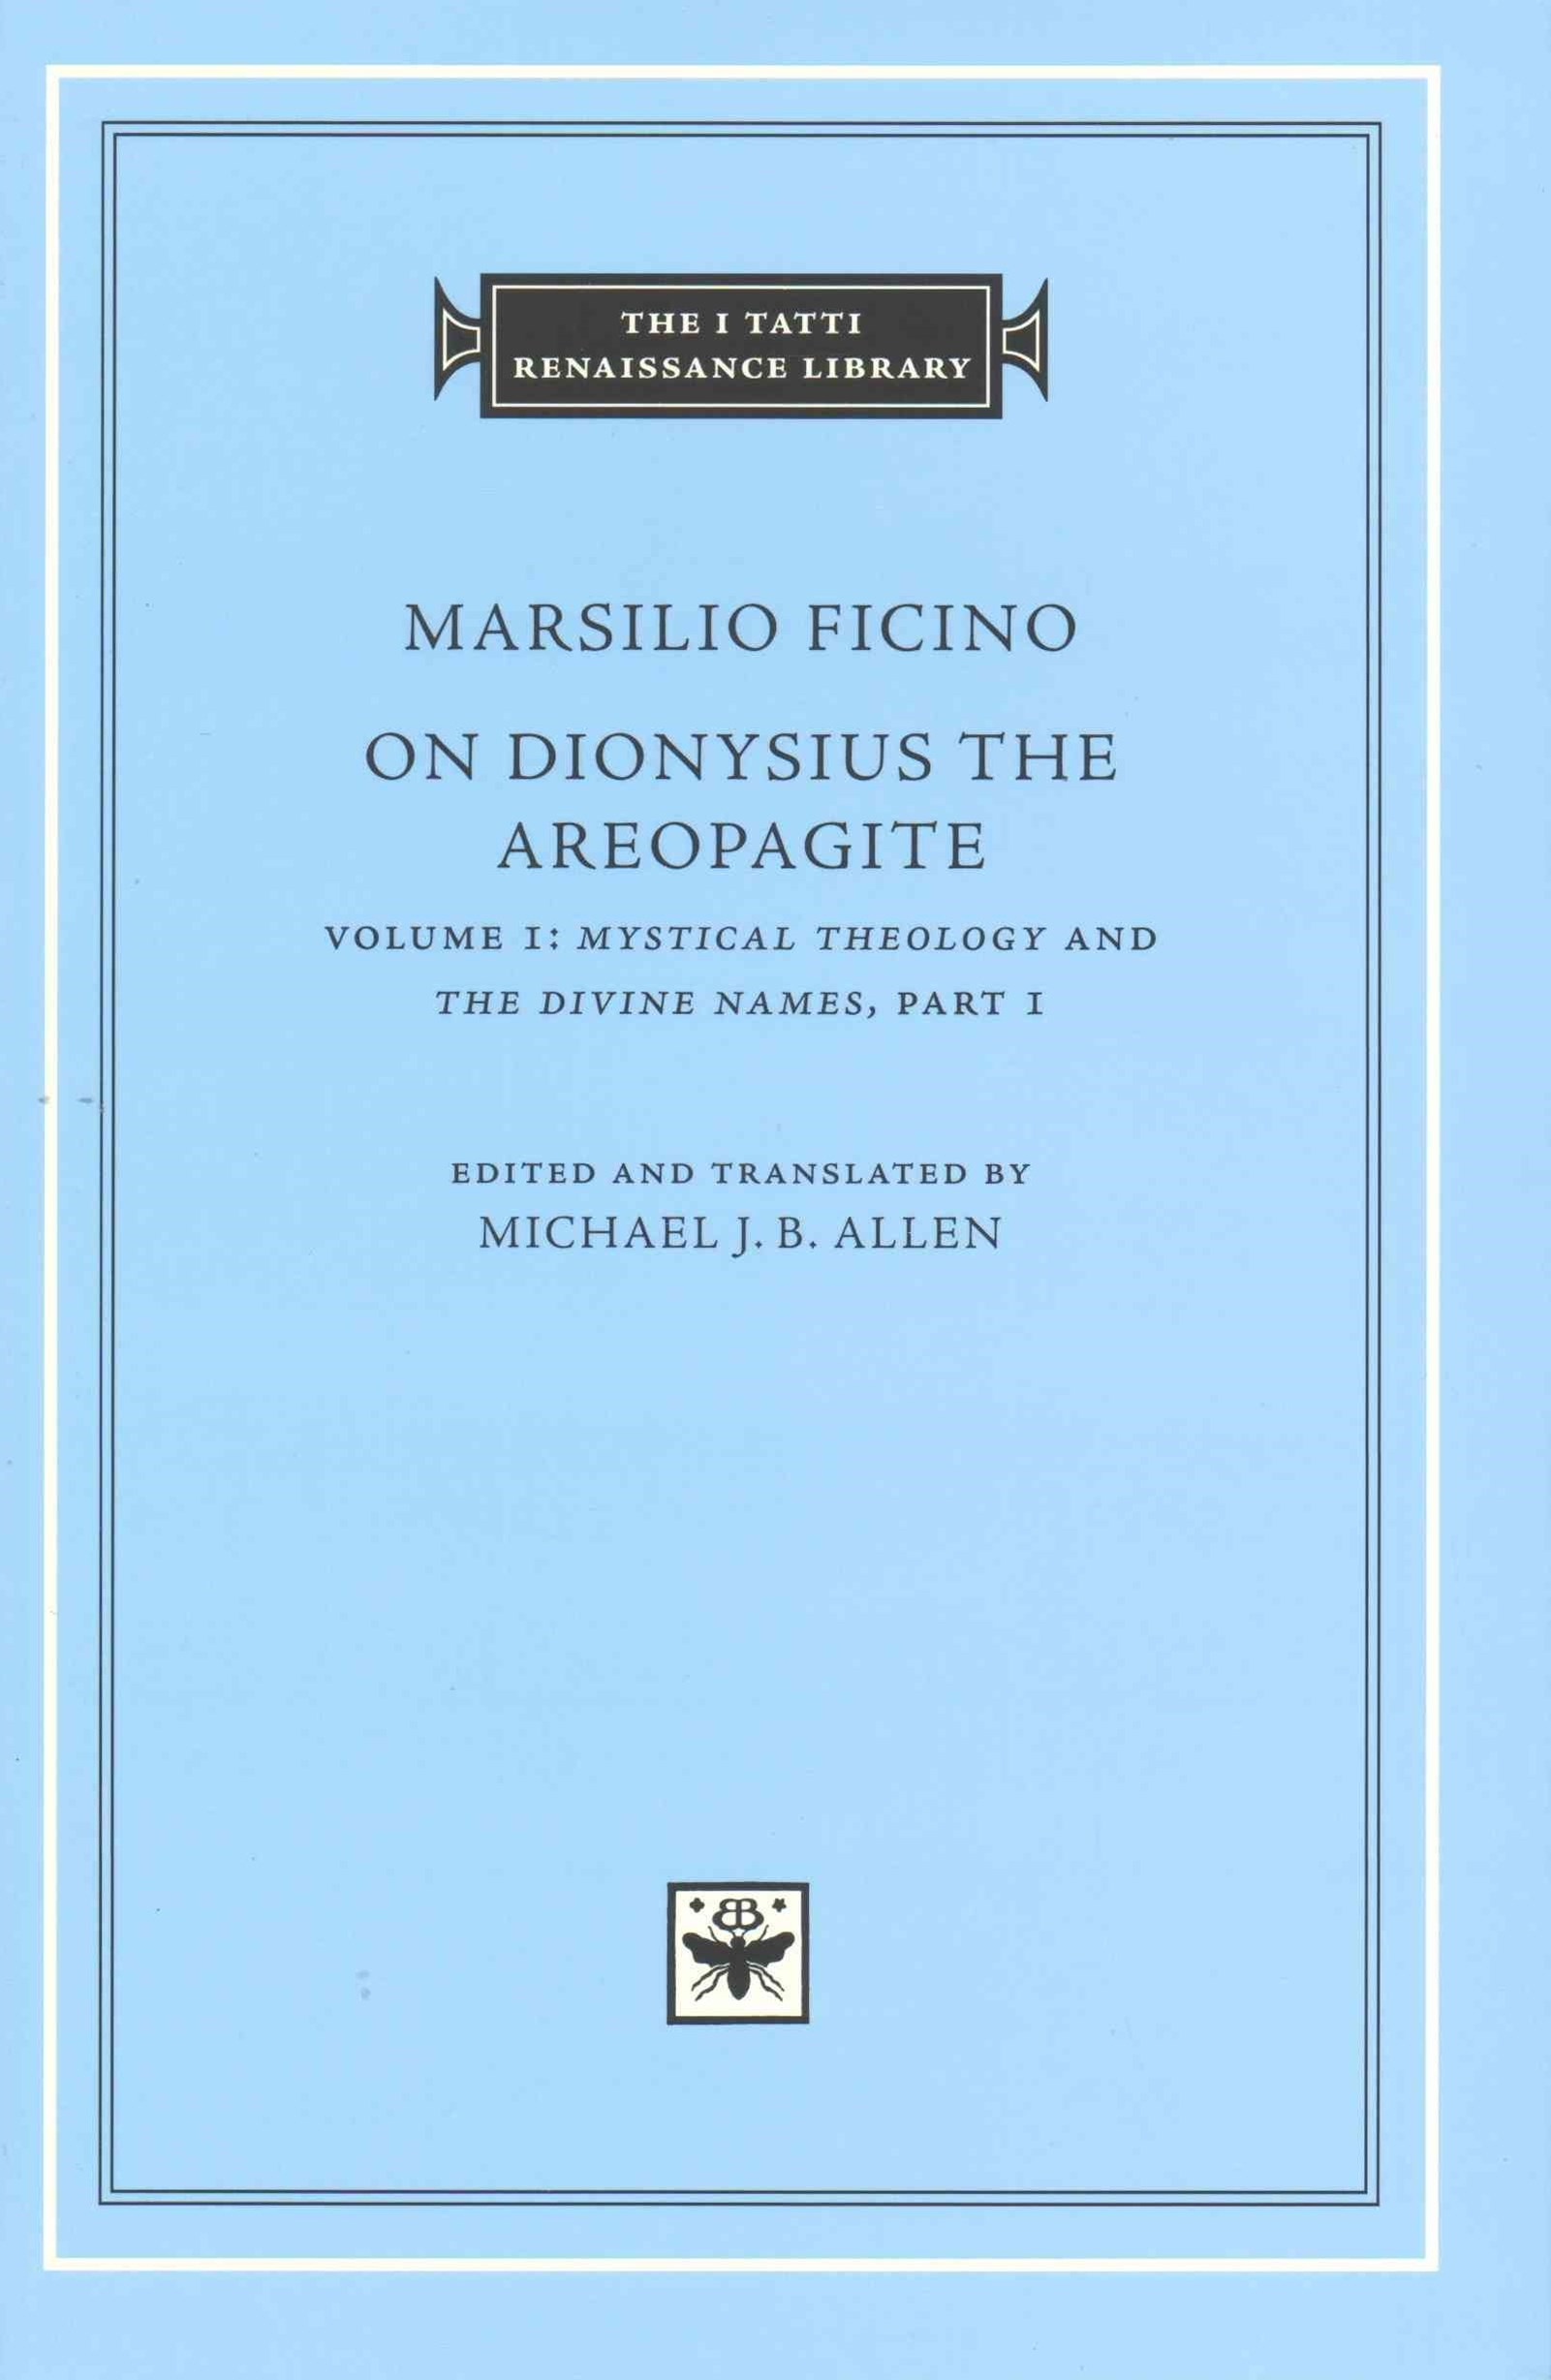 On Dionysius the Areopagite, Volume 1